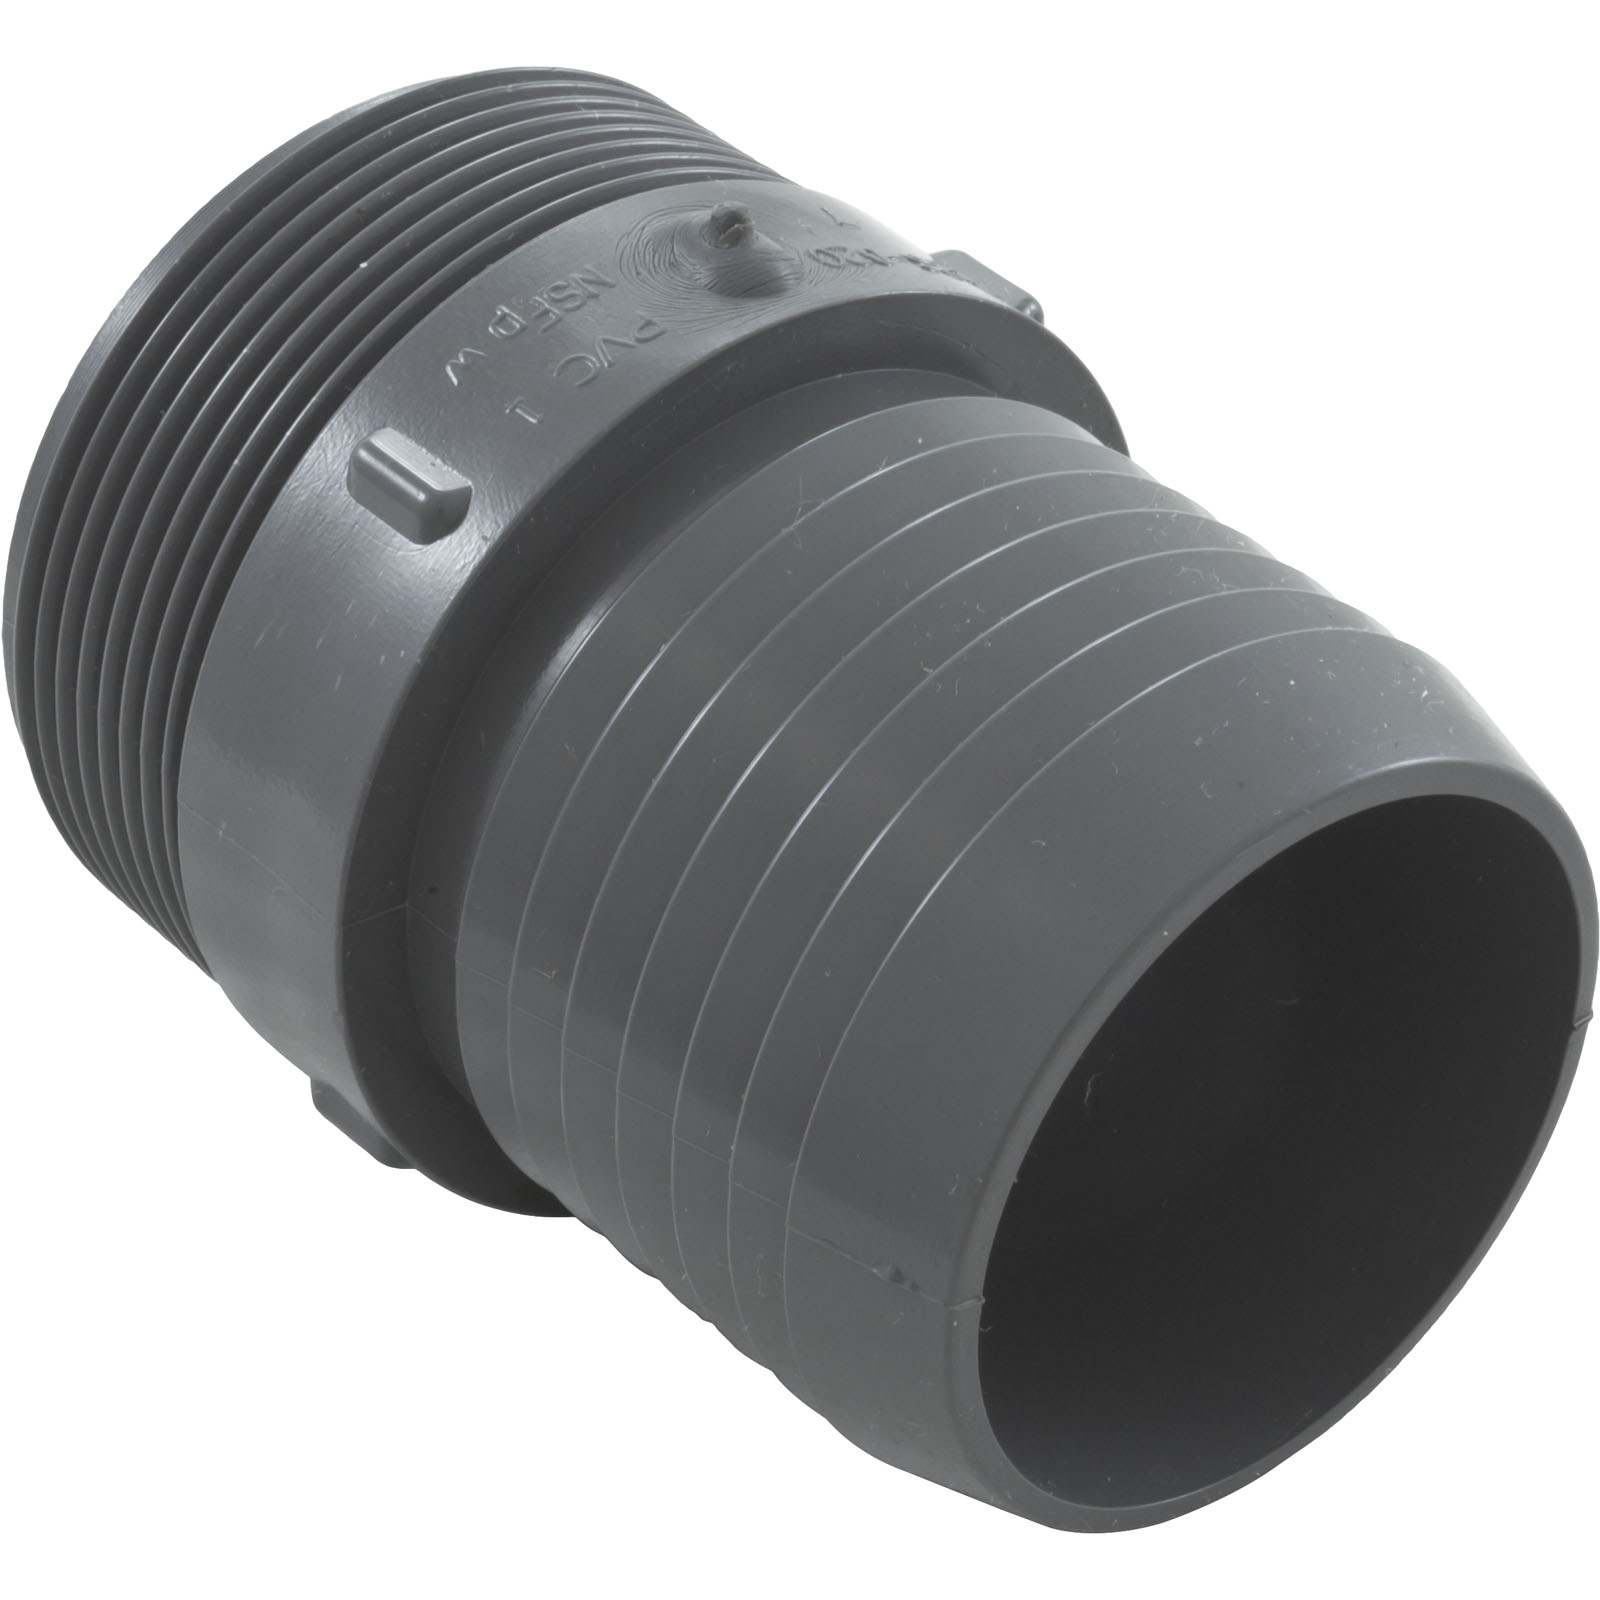 Barb adapter lasco quot male pipe thread pvc